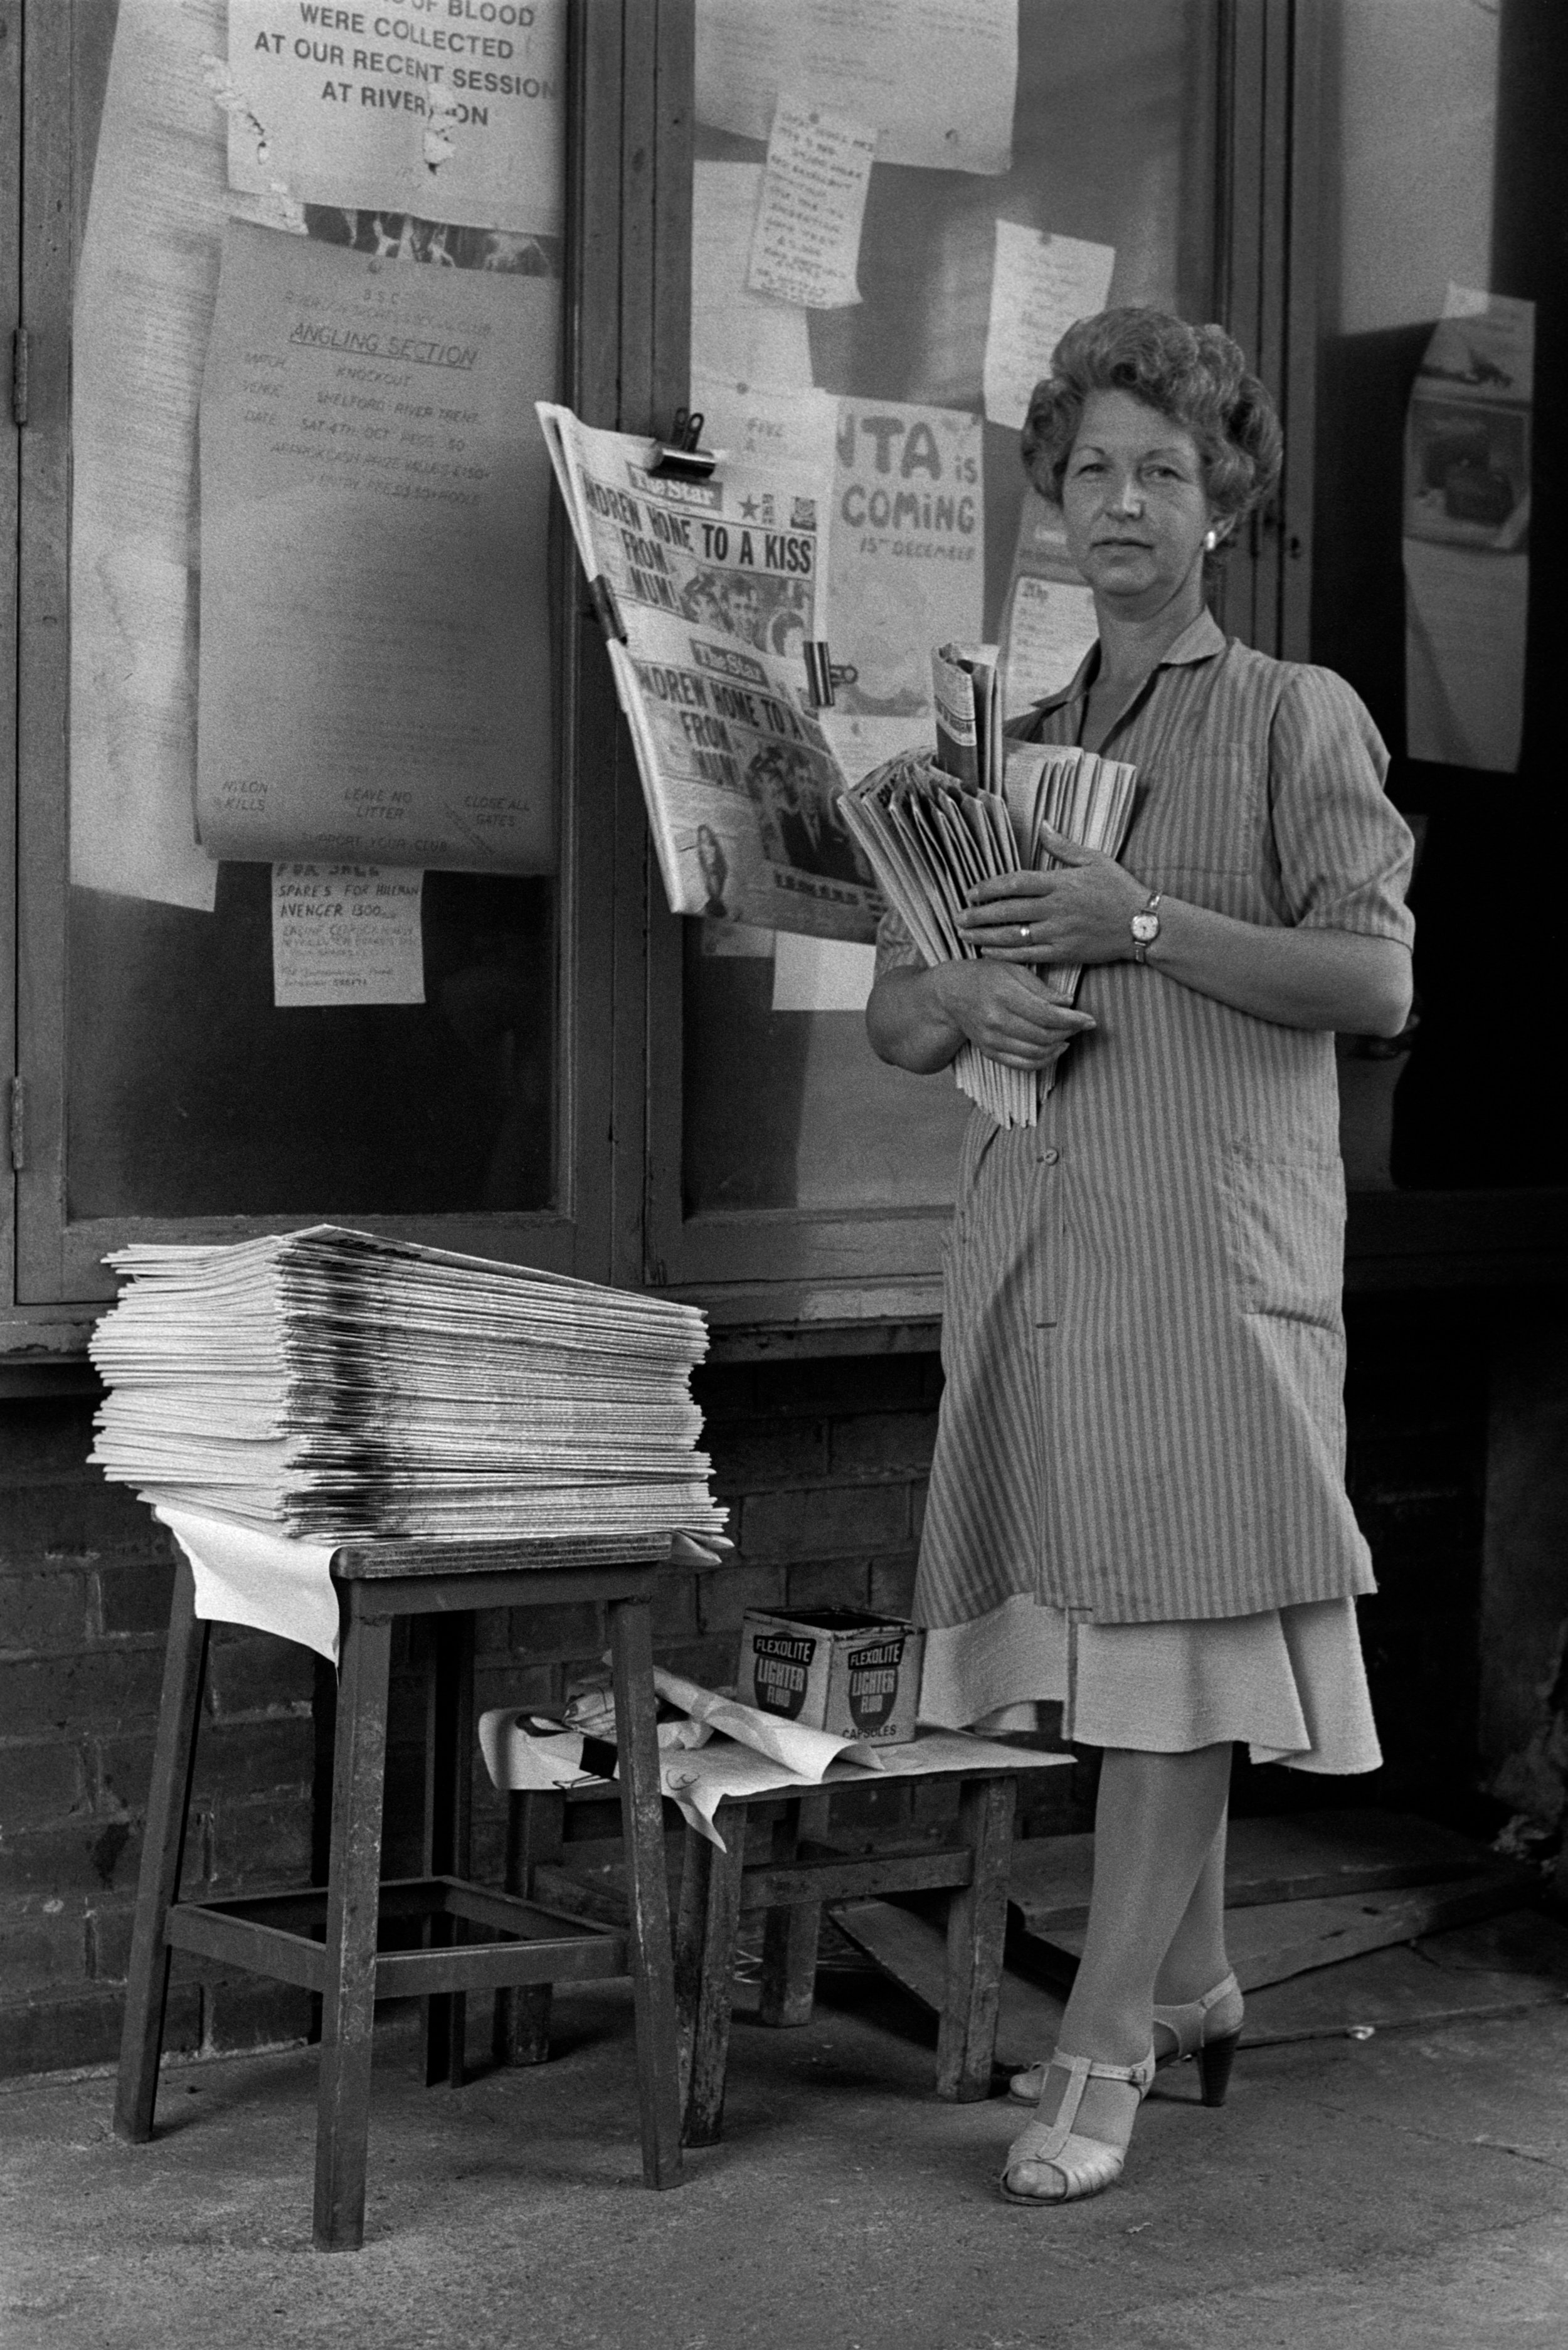 Von, the Sheffield Star newspaper seller, at BSC River Don works, Sheffield. (Martin Jenkinson, 1982)